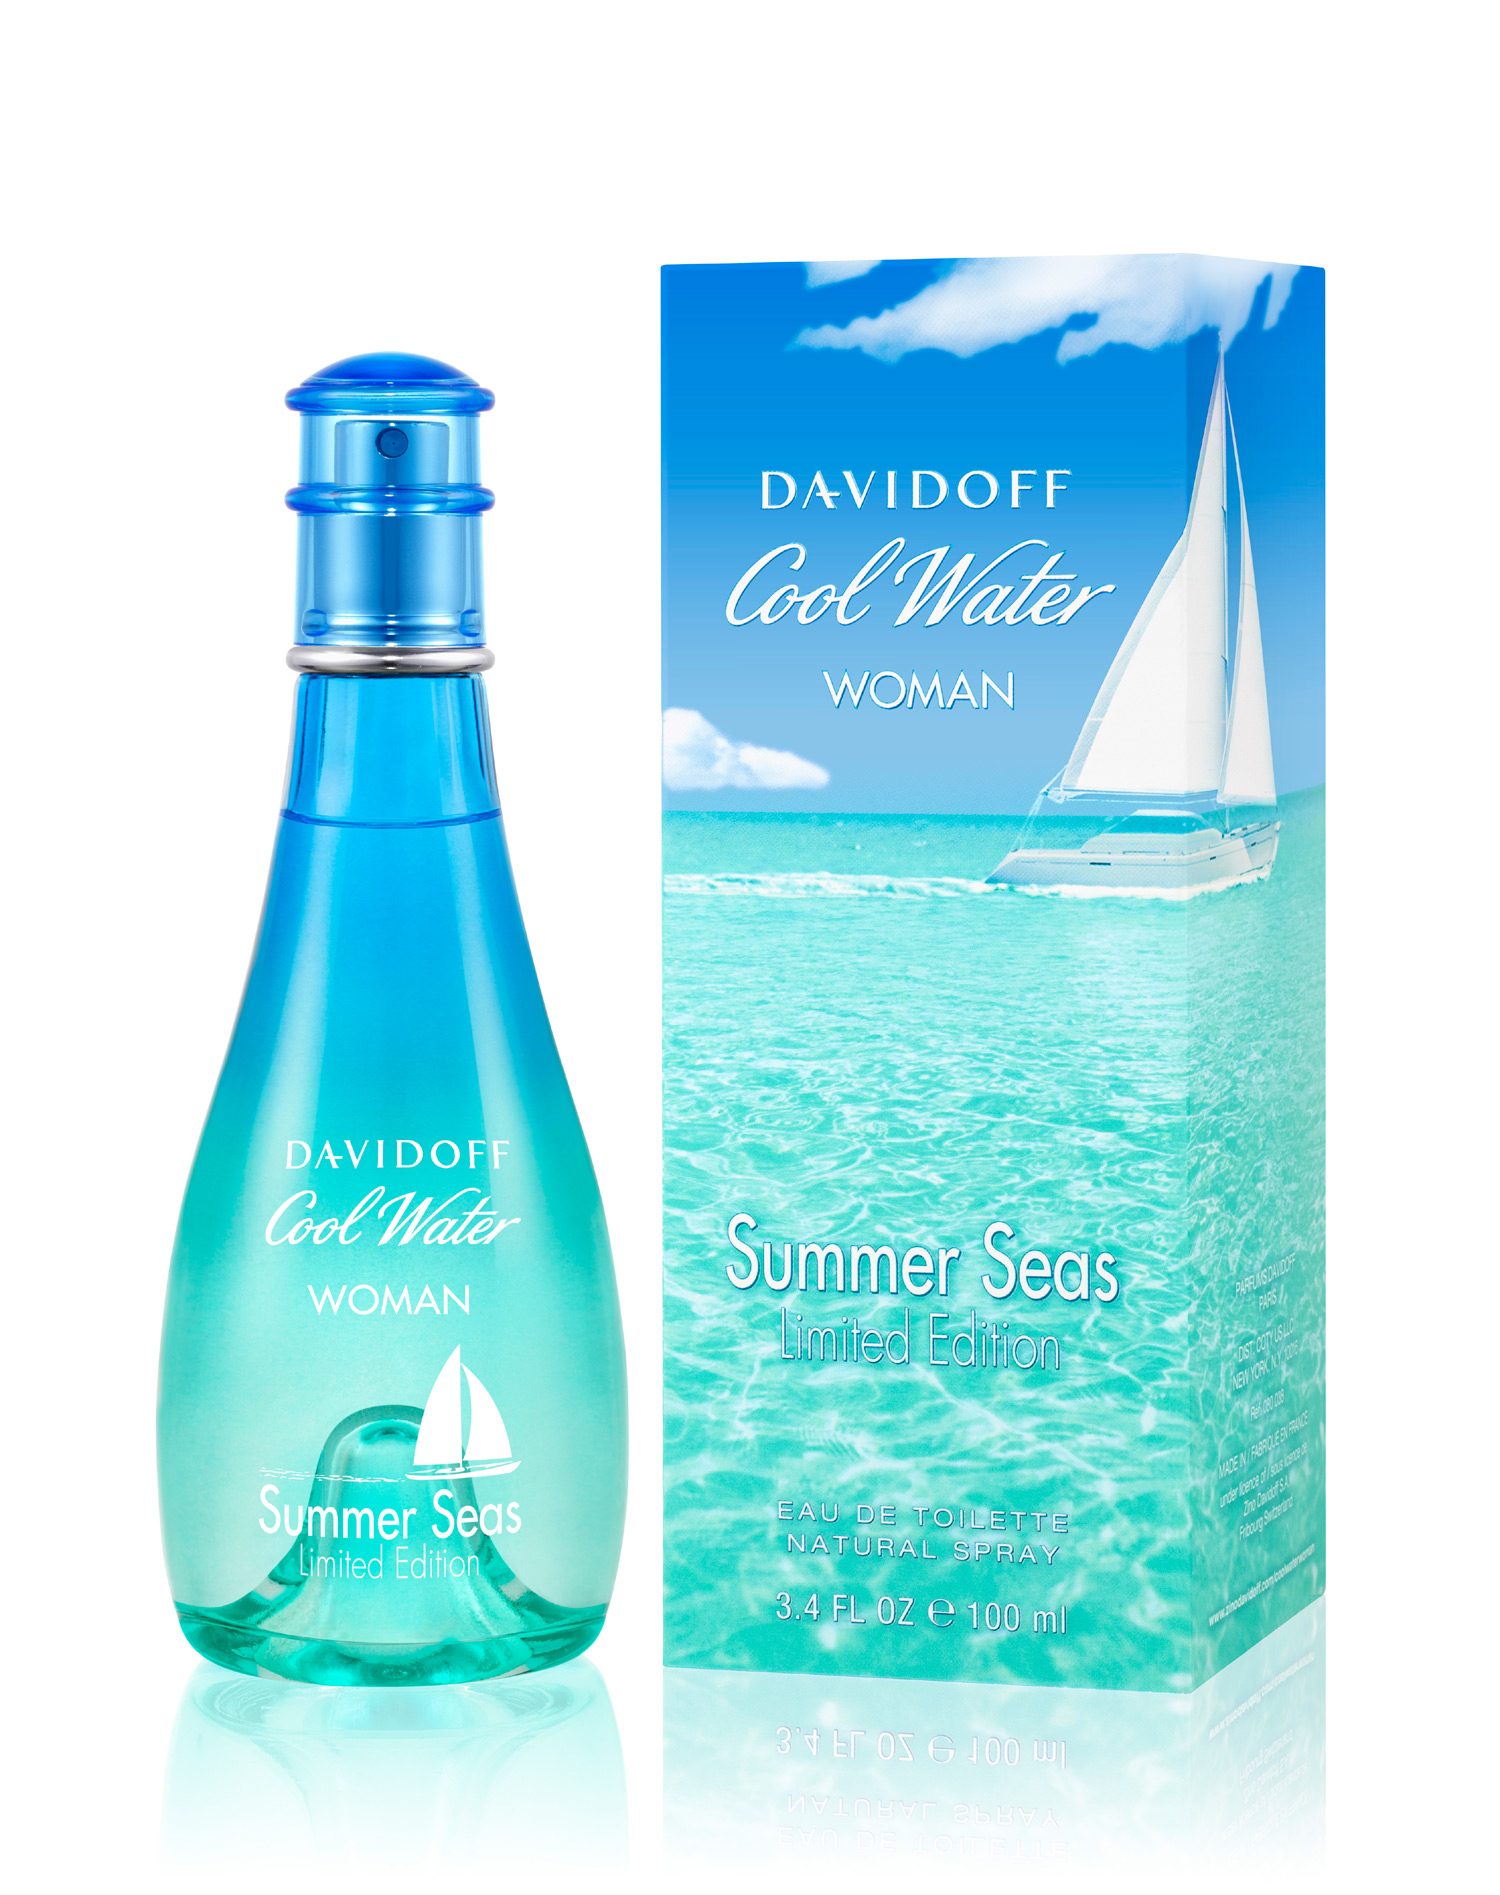 Cool Water Woman Summer Seas Davidoff Perfume A Fragrance For